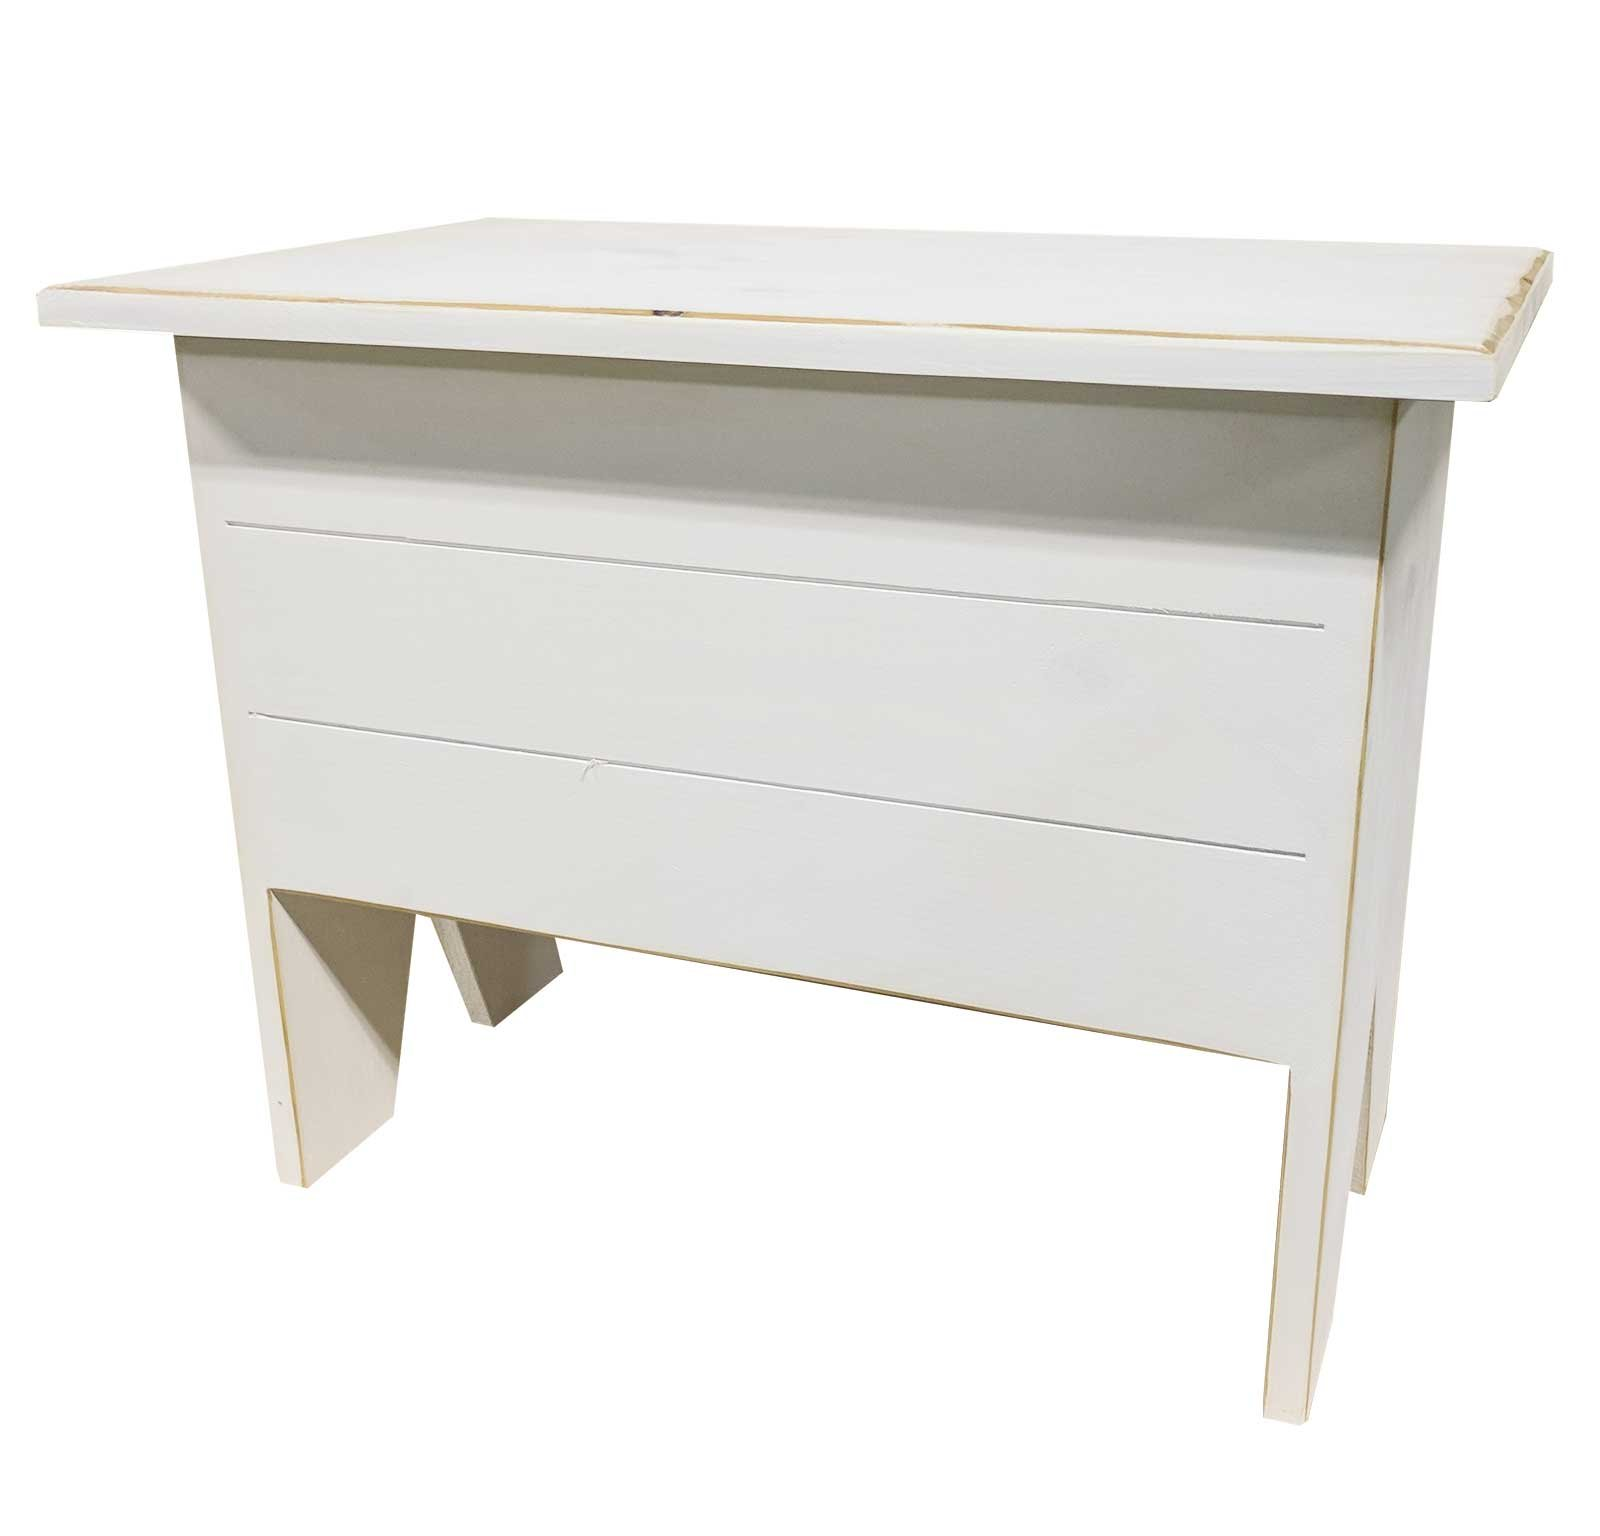 Sawdust City Entryway Bench With Storage 2' long (Old Cottage White) by Sawdust City (Image #1)